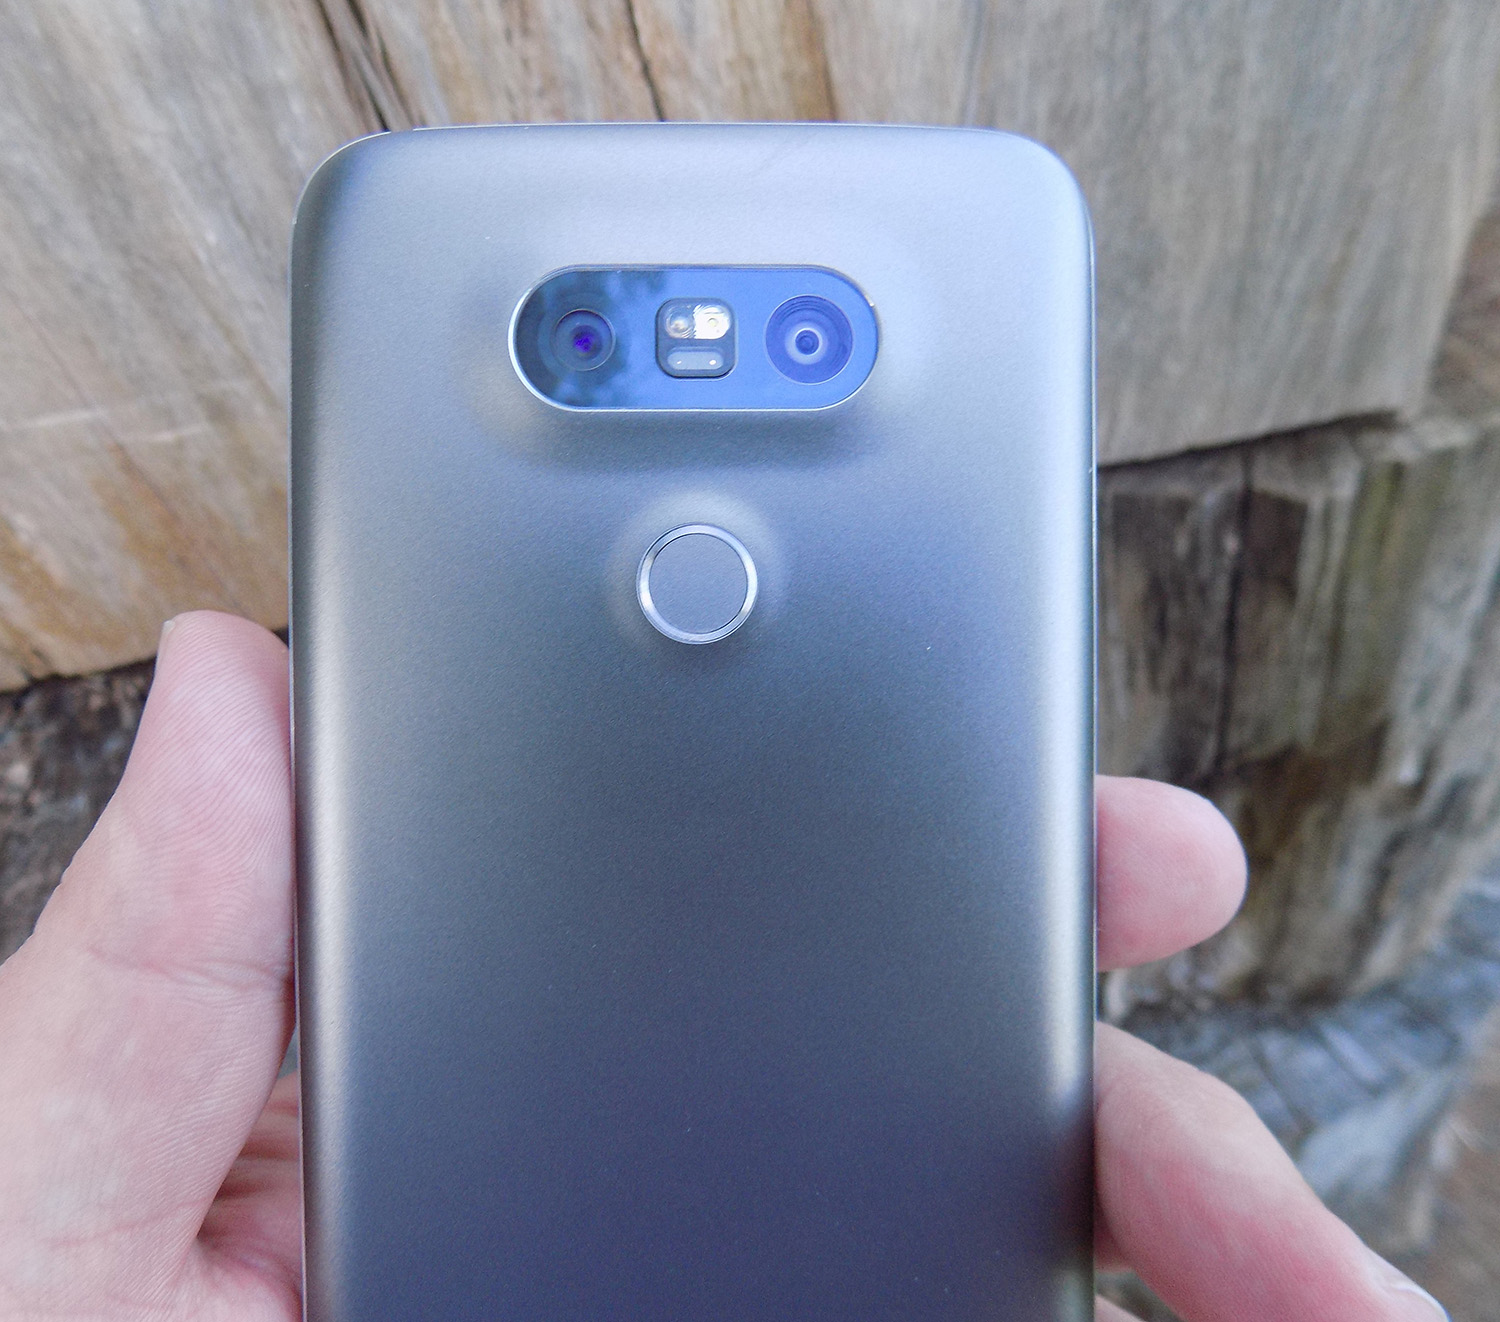 LG G5 Review: modular marvel or bold blunder?